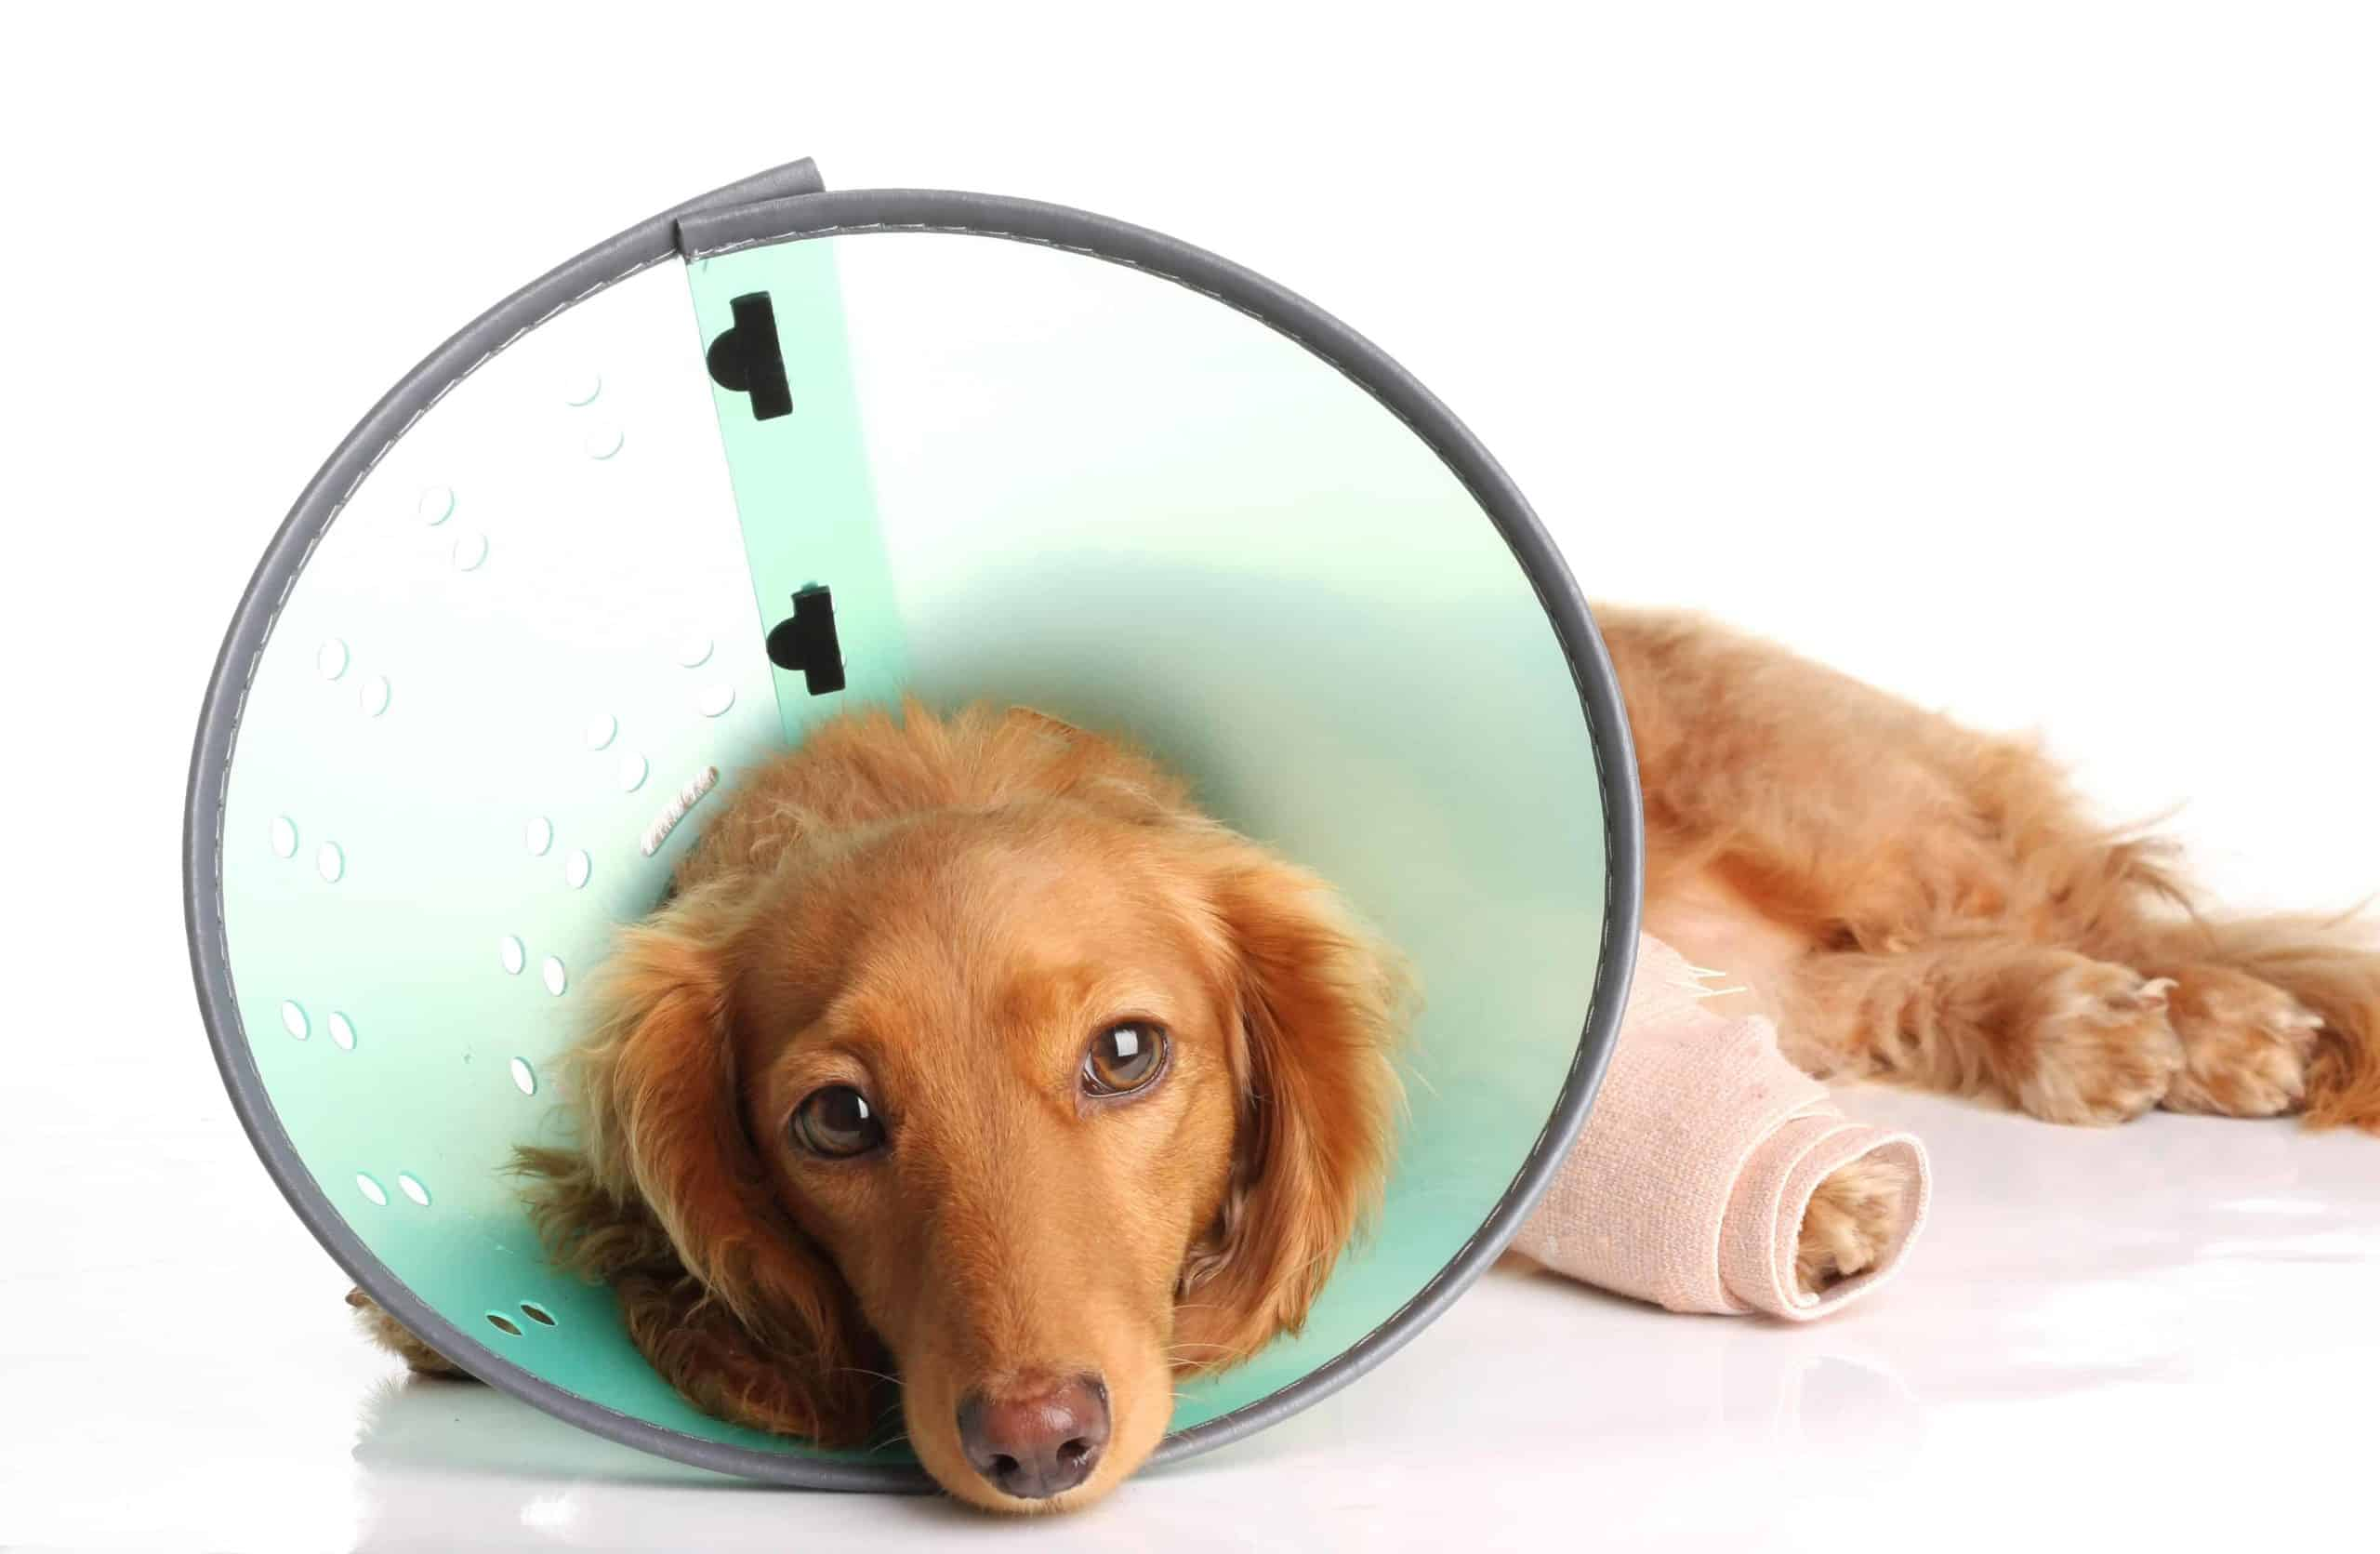 Golden Retriever with injured leg wears an e-collar. When an emergency strikes, it can be helpful to follow a step-by-step list of things you should do when your dog needs immediate care.